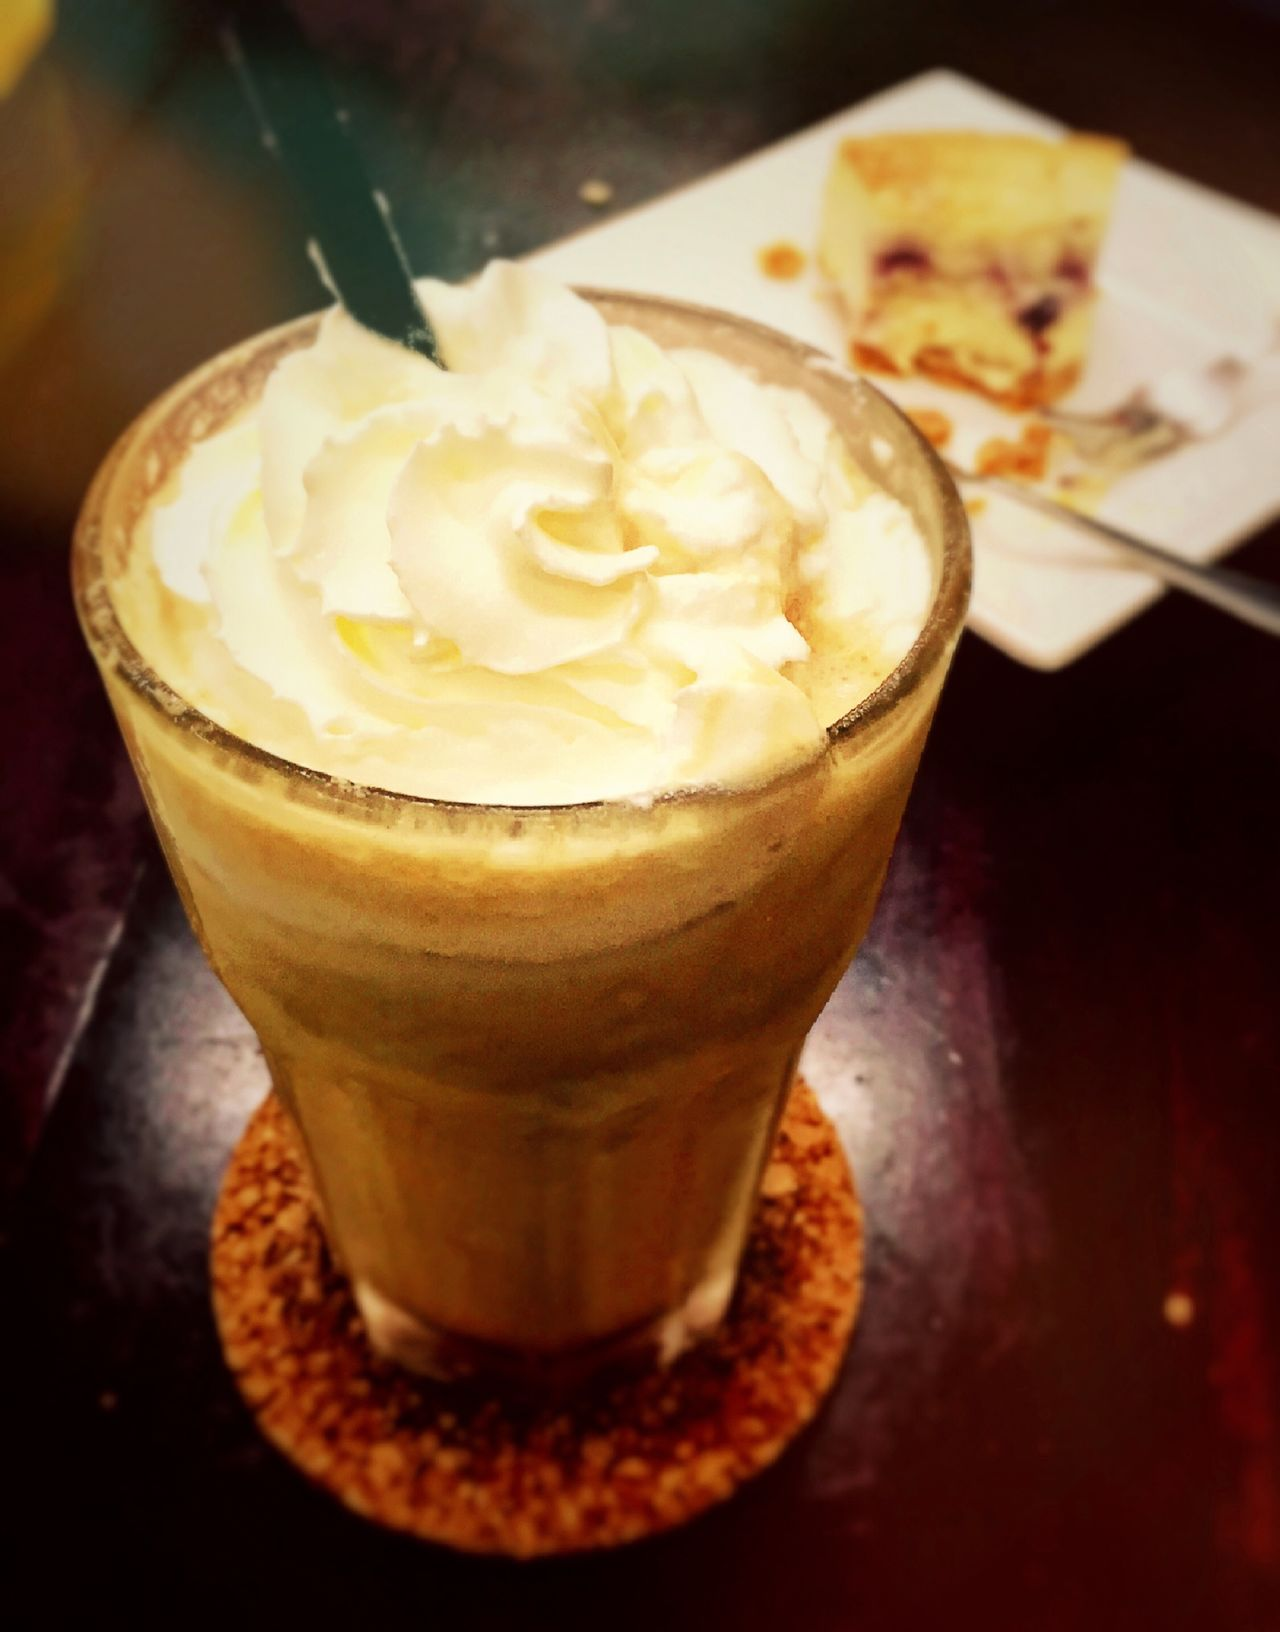 IPhoneography Foodphotography Eating Food Photography Iphone 6 First Eyeem Photo Food Porn Enjoying Life Western Food iced blended latte